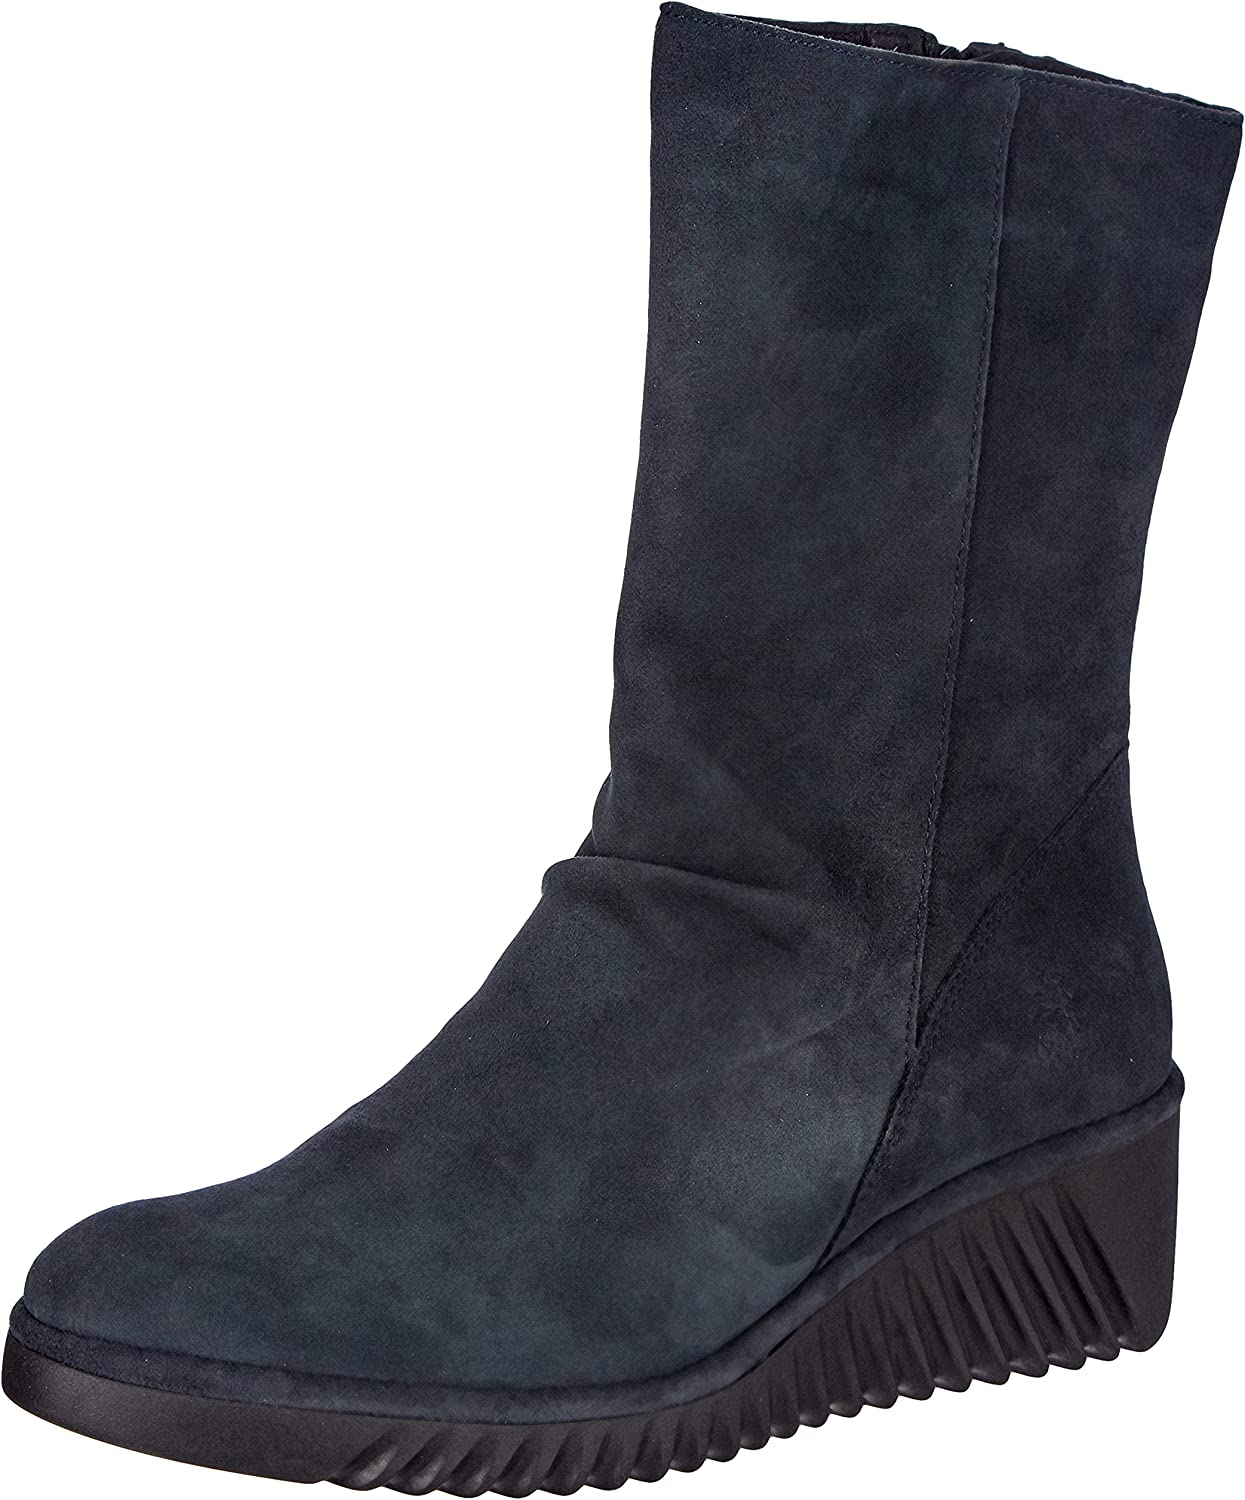 Fly London Women's Ankle Max 56% OFF Super beauty product restock quality top Boots Winter